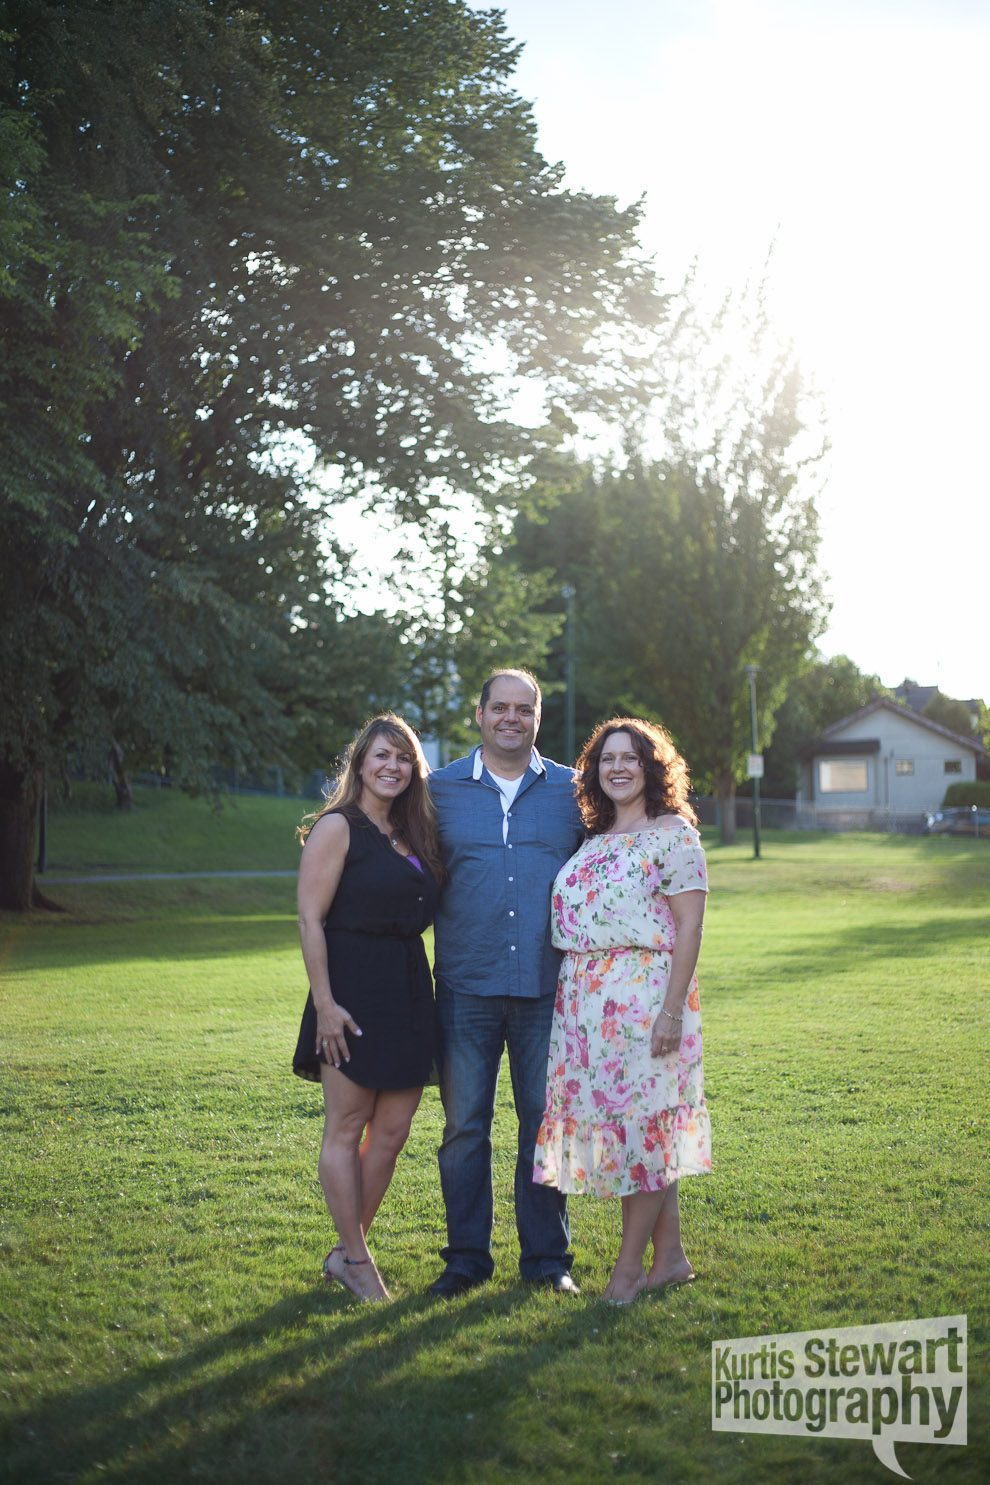 Vancouver family portrait photography session